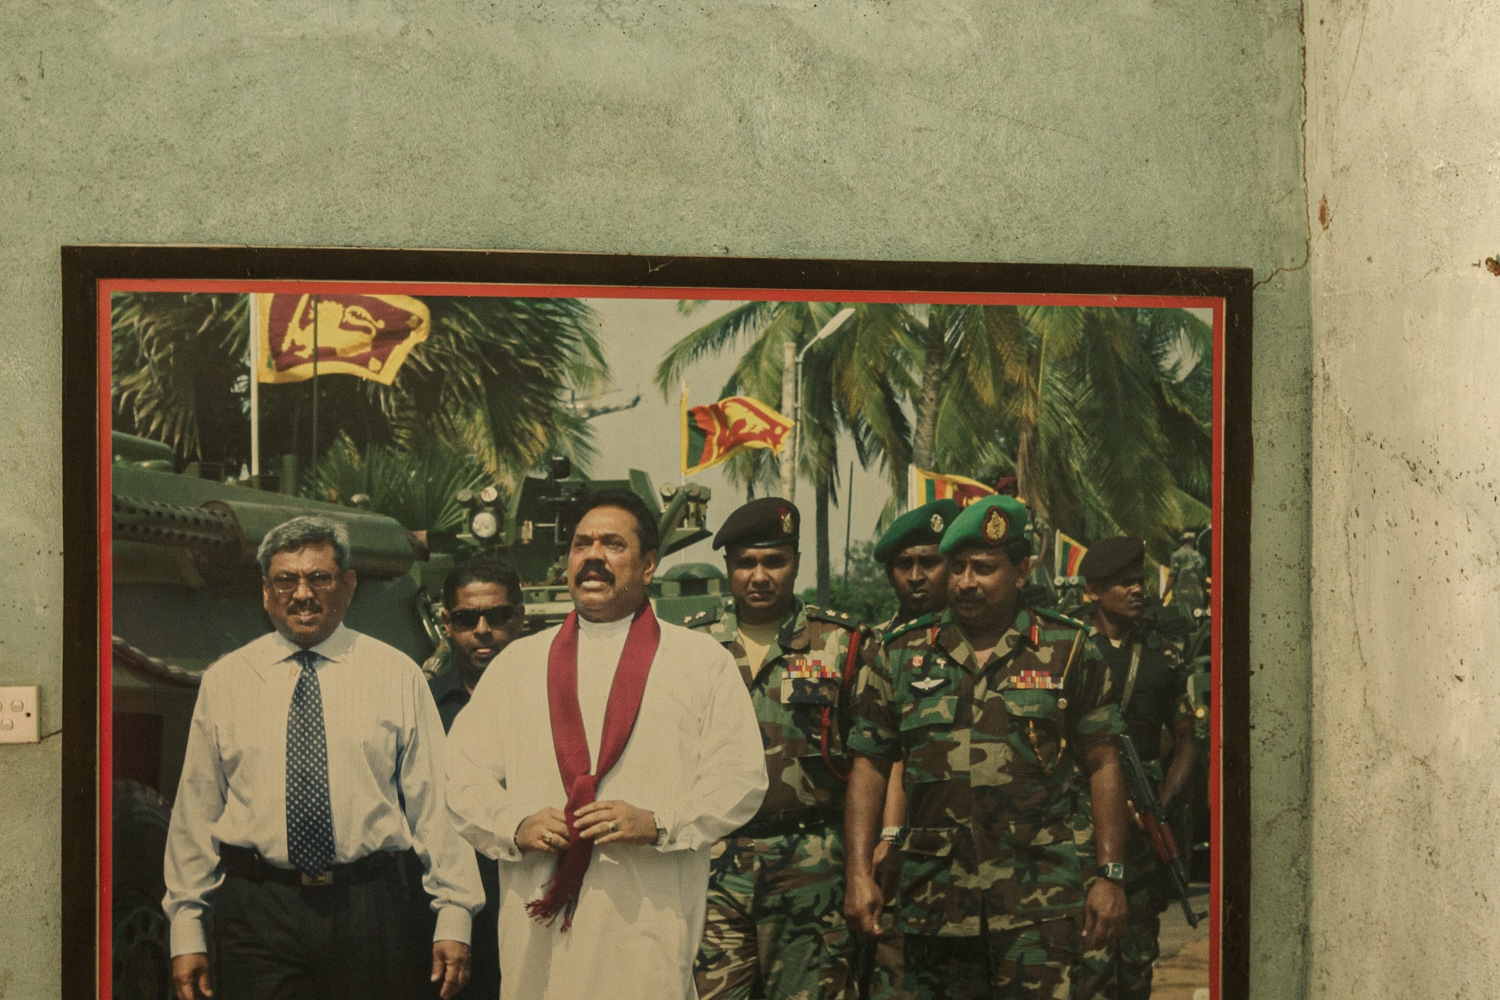 A picture of a military celebration with the ex-President, Mahinda Rajapaksa (centre), and his brother, Gotabhaya Rajapksa (right), ex-Minister of Defence. Together they oversaw and executed the final phase of the civil war in 2009, in which tens of thousands of Tamil civilians were killed in a matter of months. Gotabhaya Rajapksa used the aftermath of the Easter Sunday attacks to announce his run for the presidency and the need for strong leaders who would put Sinhalese Buddhists first. (September, 2015)